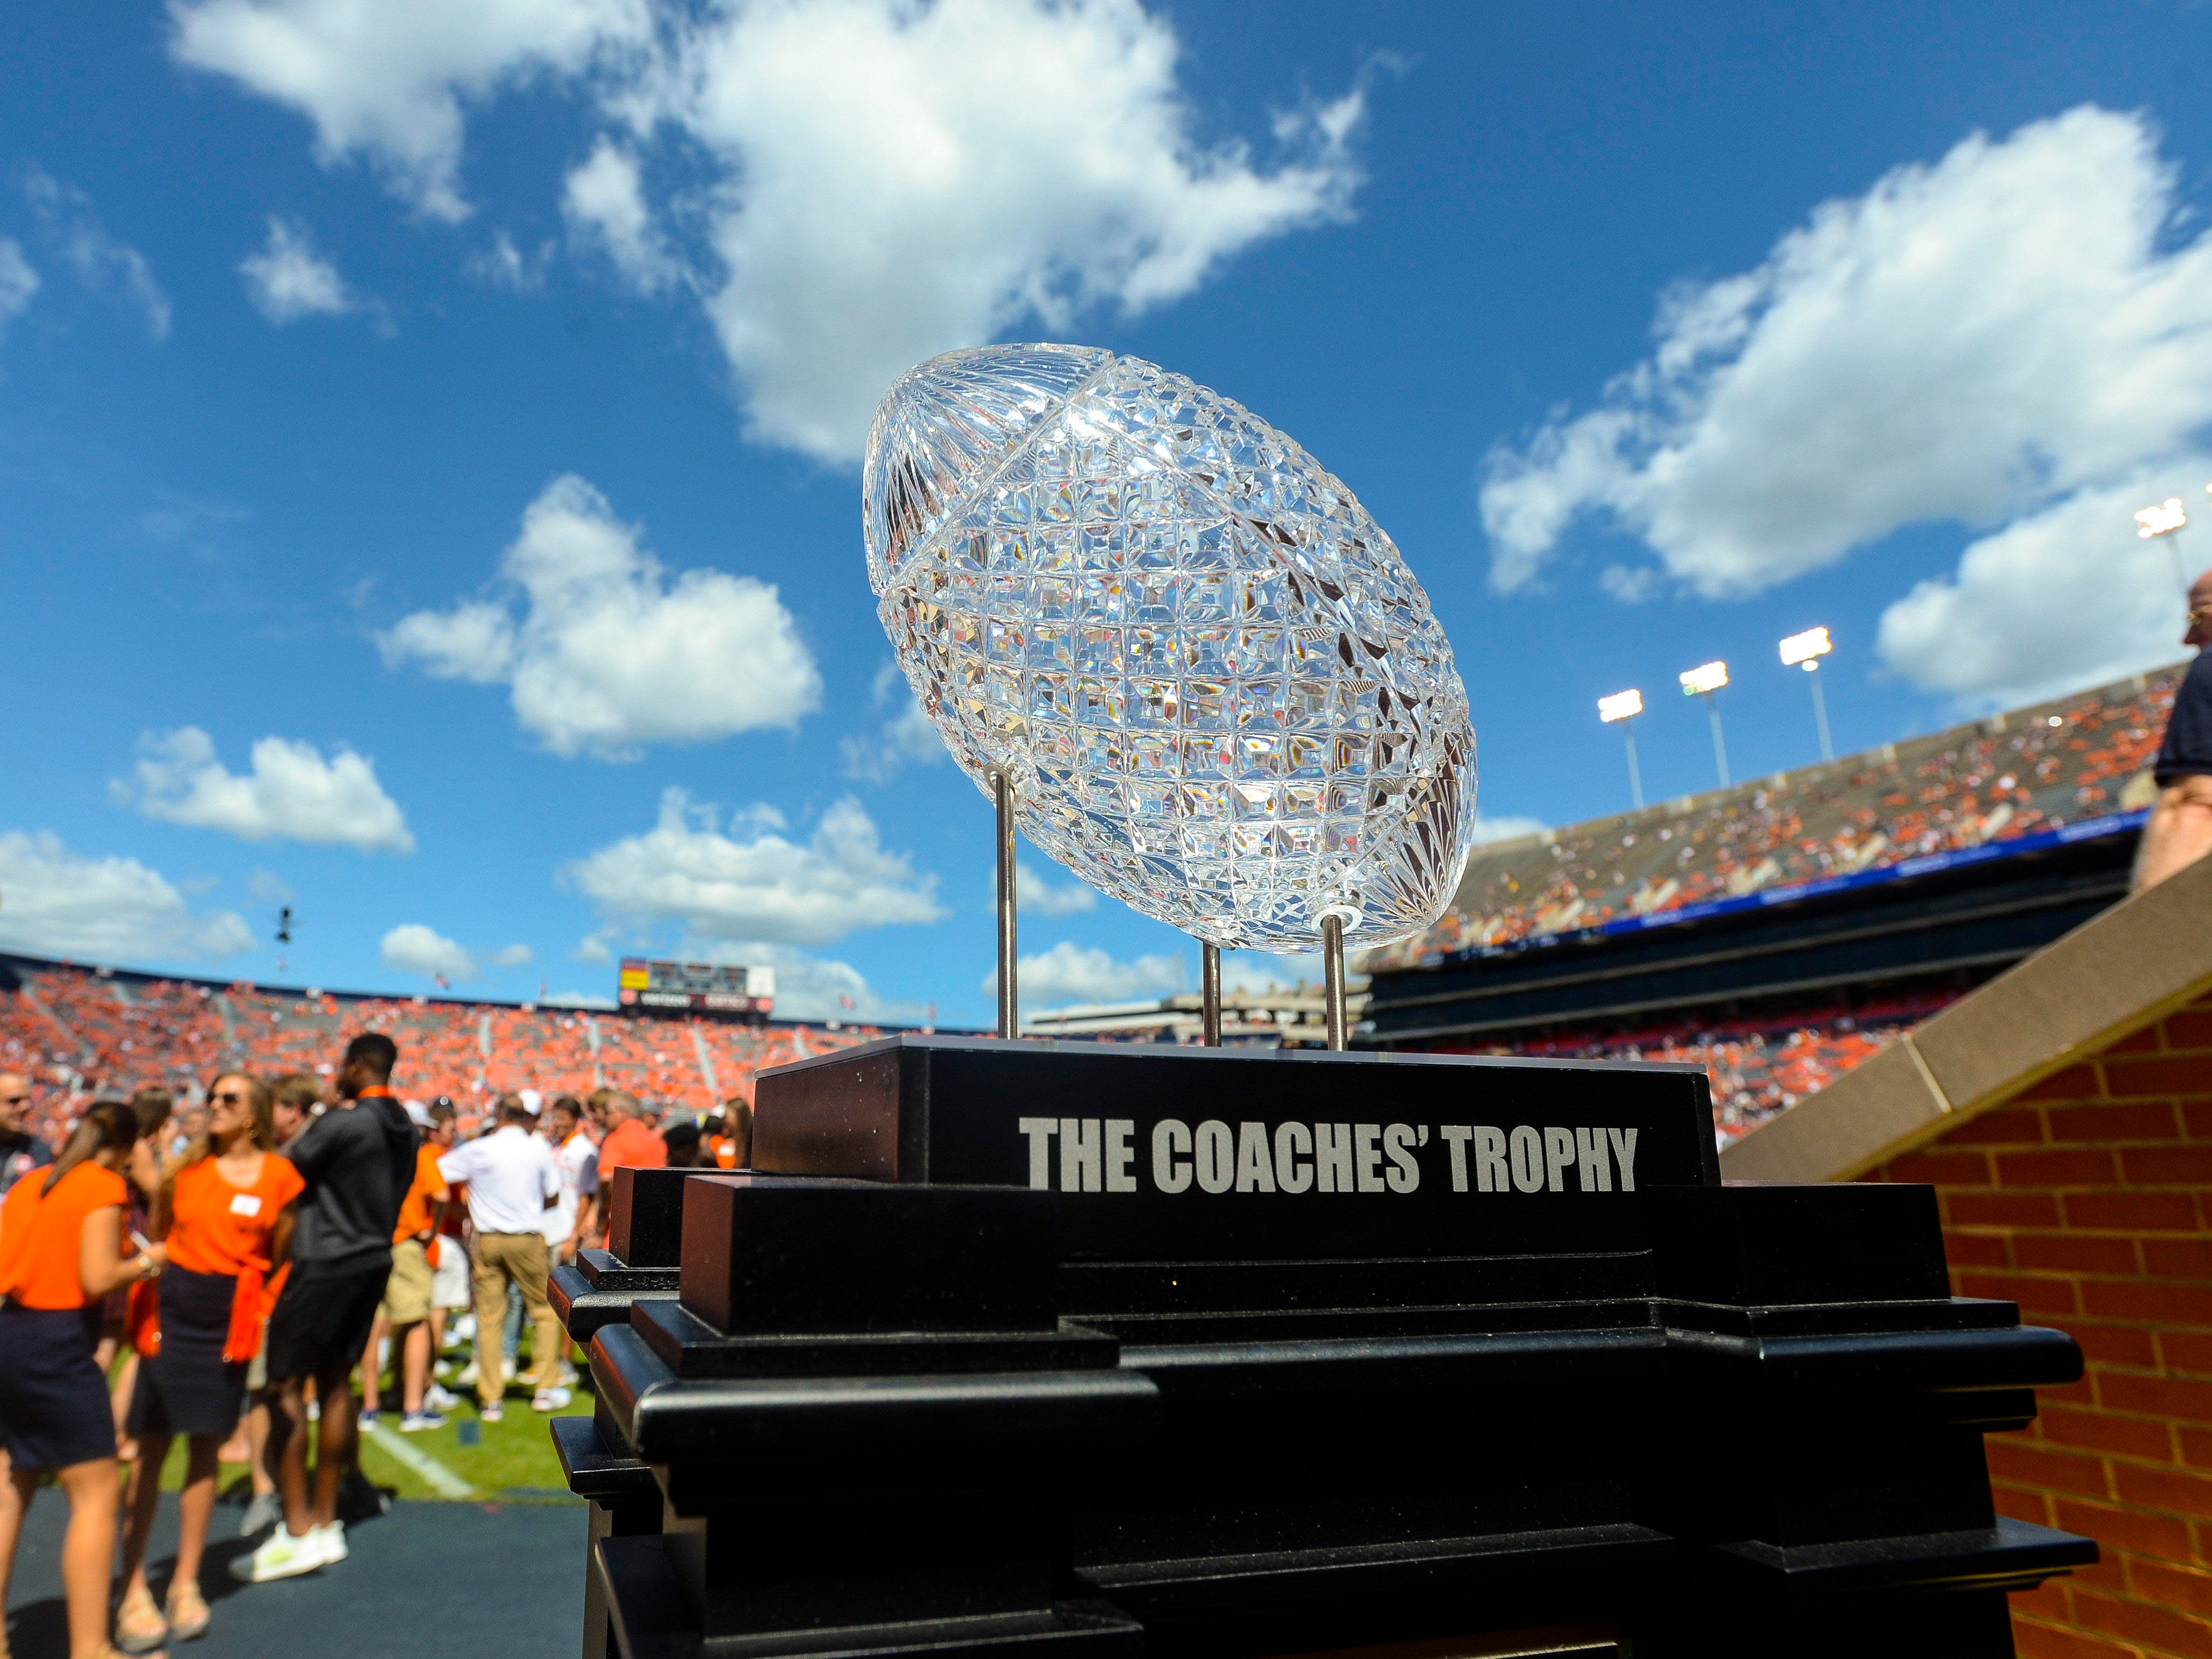 The Amway Coaches Trophy on display before the game between the LSU Tigers and Auburn Tigers at Jordan-Hare Stadium.